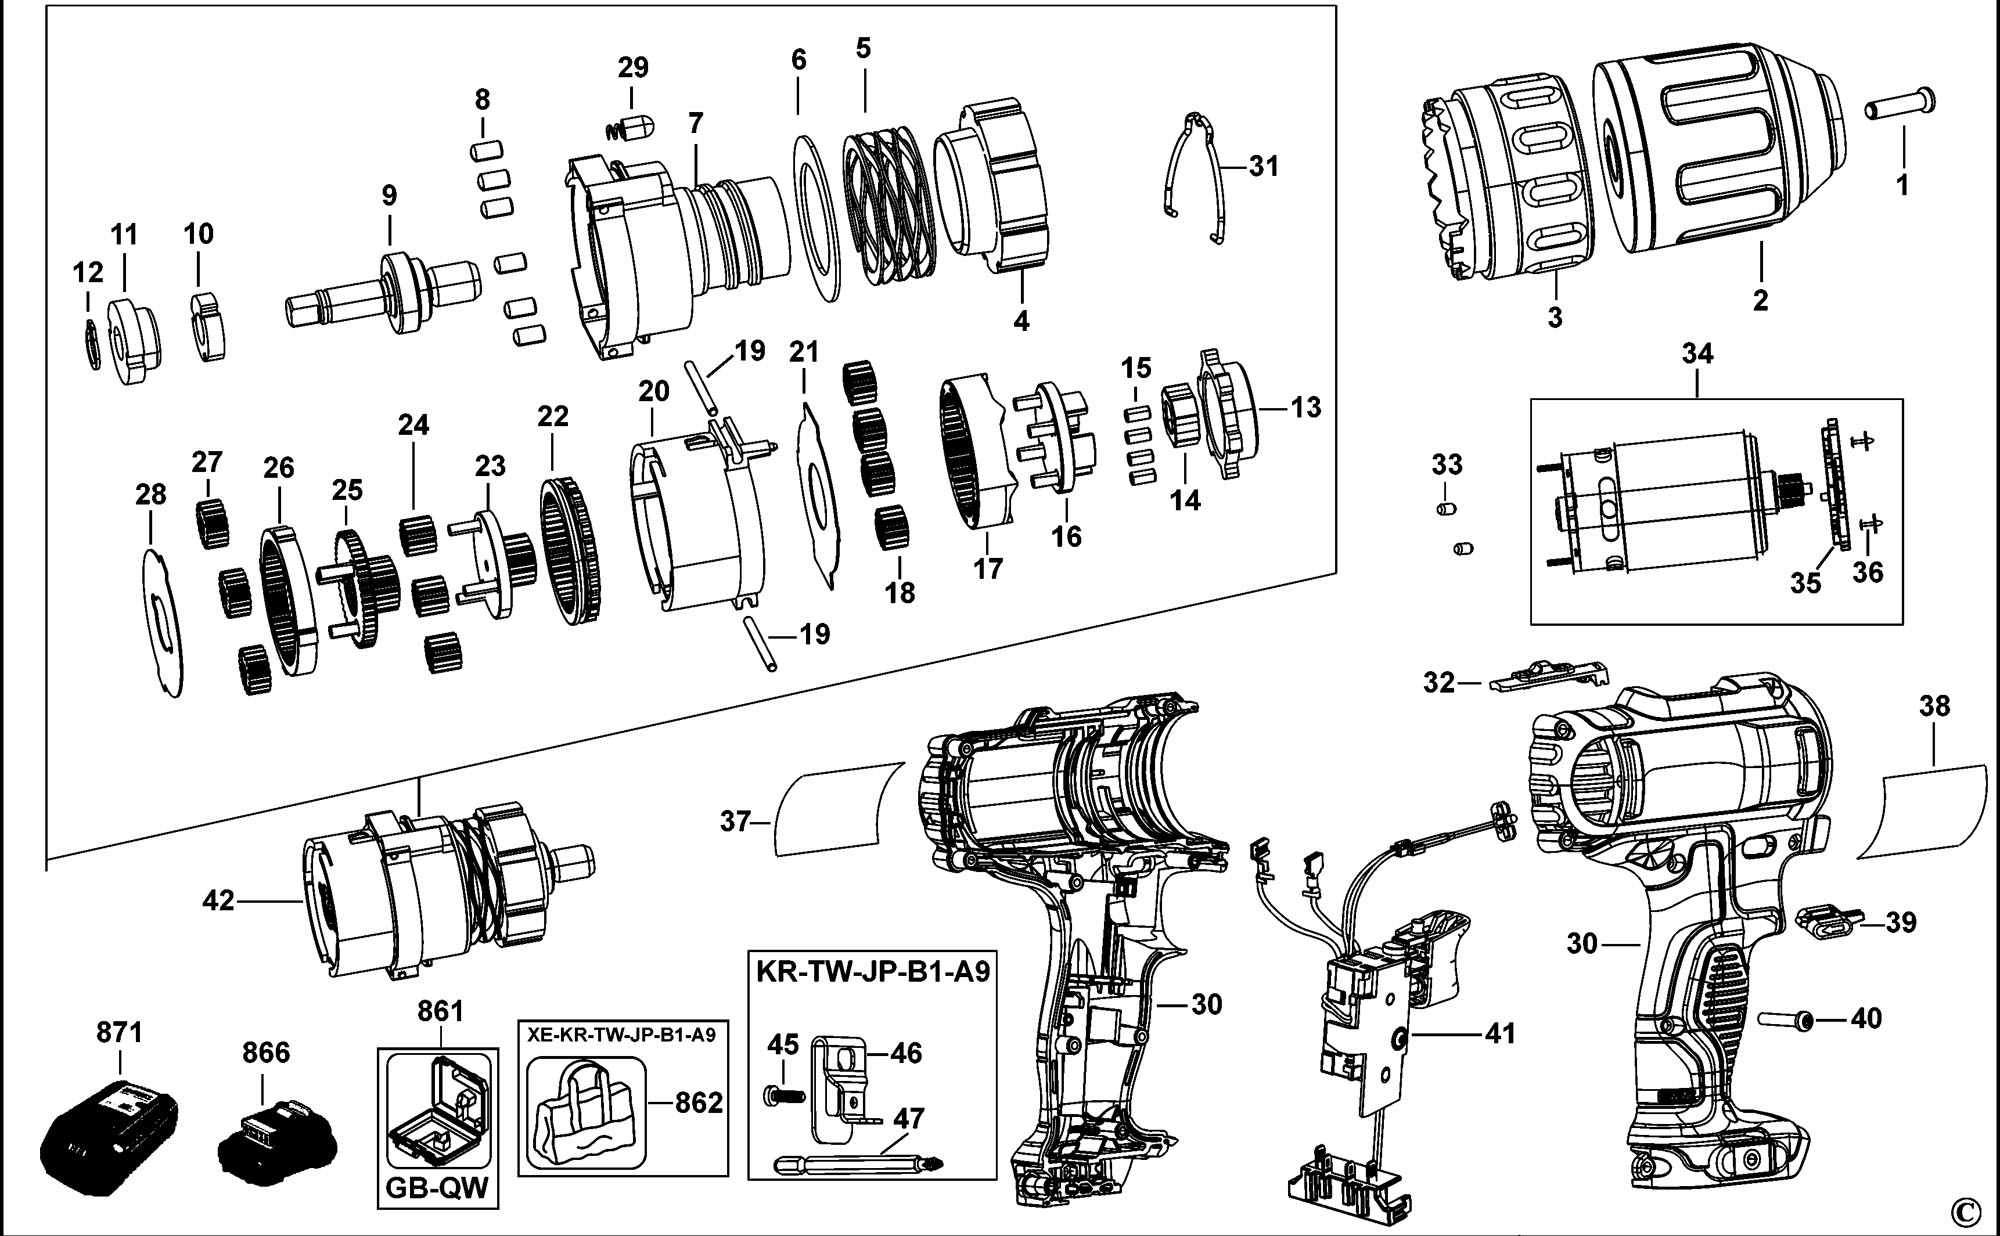 spares for dewalt dcd710 cordless drill (type 1) spare ... de walt power tool wiring diagrams power tool schematics #3